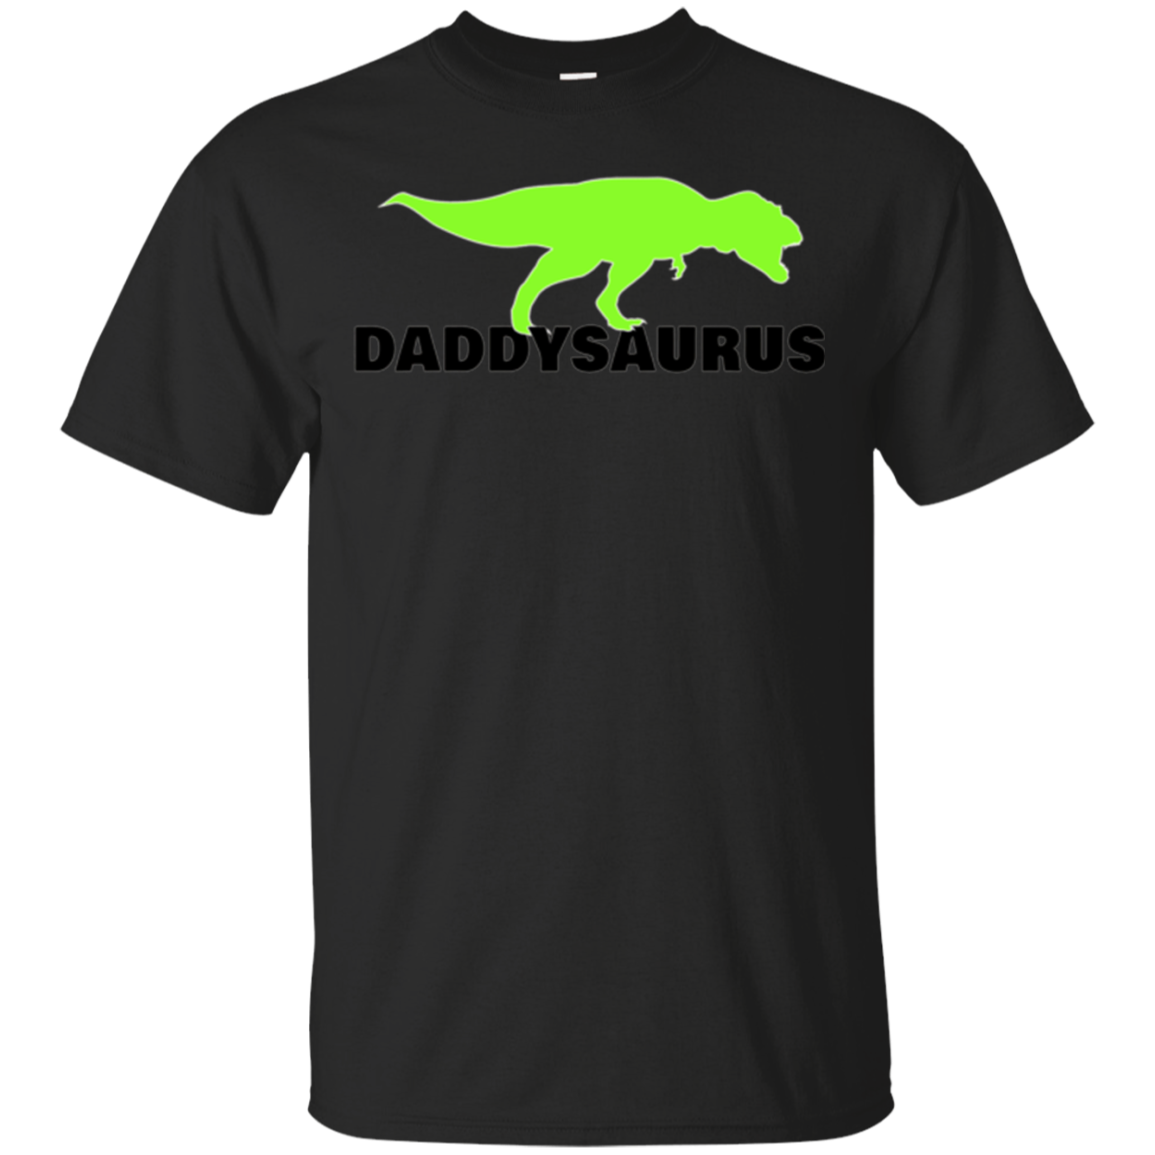 Mens Daddy Saurus T Shirt Father's Day Gifts For Dad From Wife